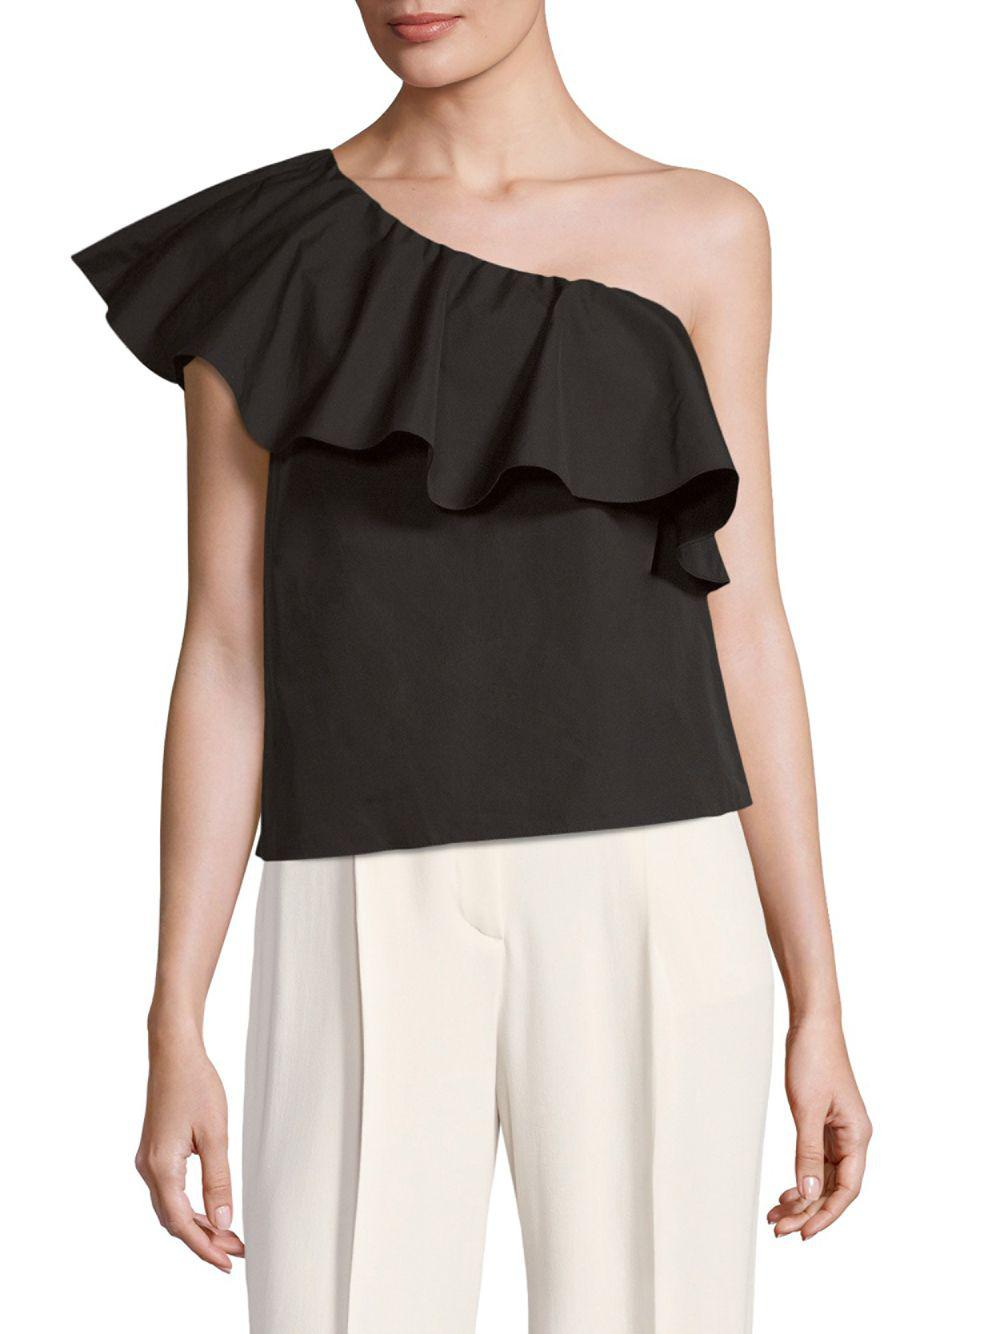 Cheap In China Cheap Best Prices Alice+olivia Woman Calla One-shoulder Ruffled Cotton-poplin Top Black Size S Alice & Olivia U2ktM8